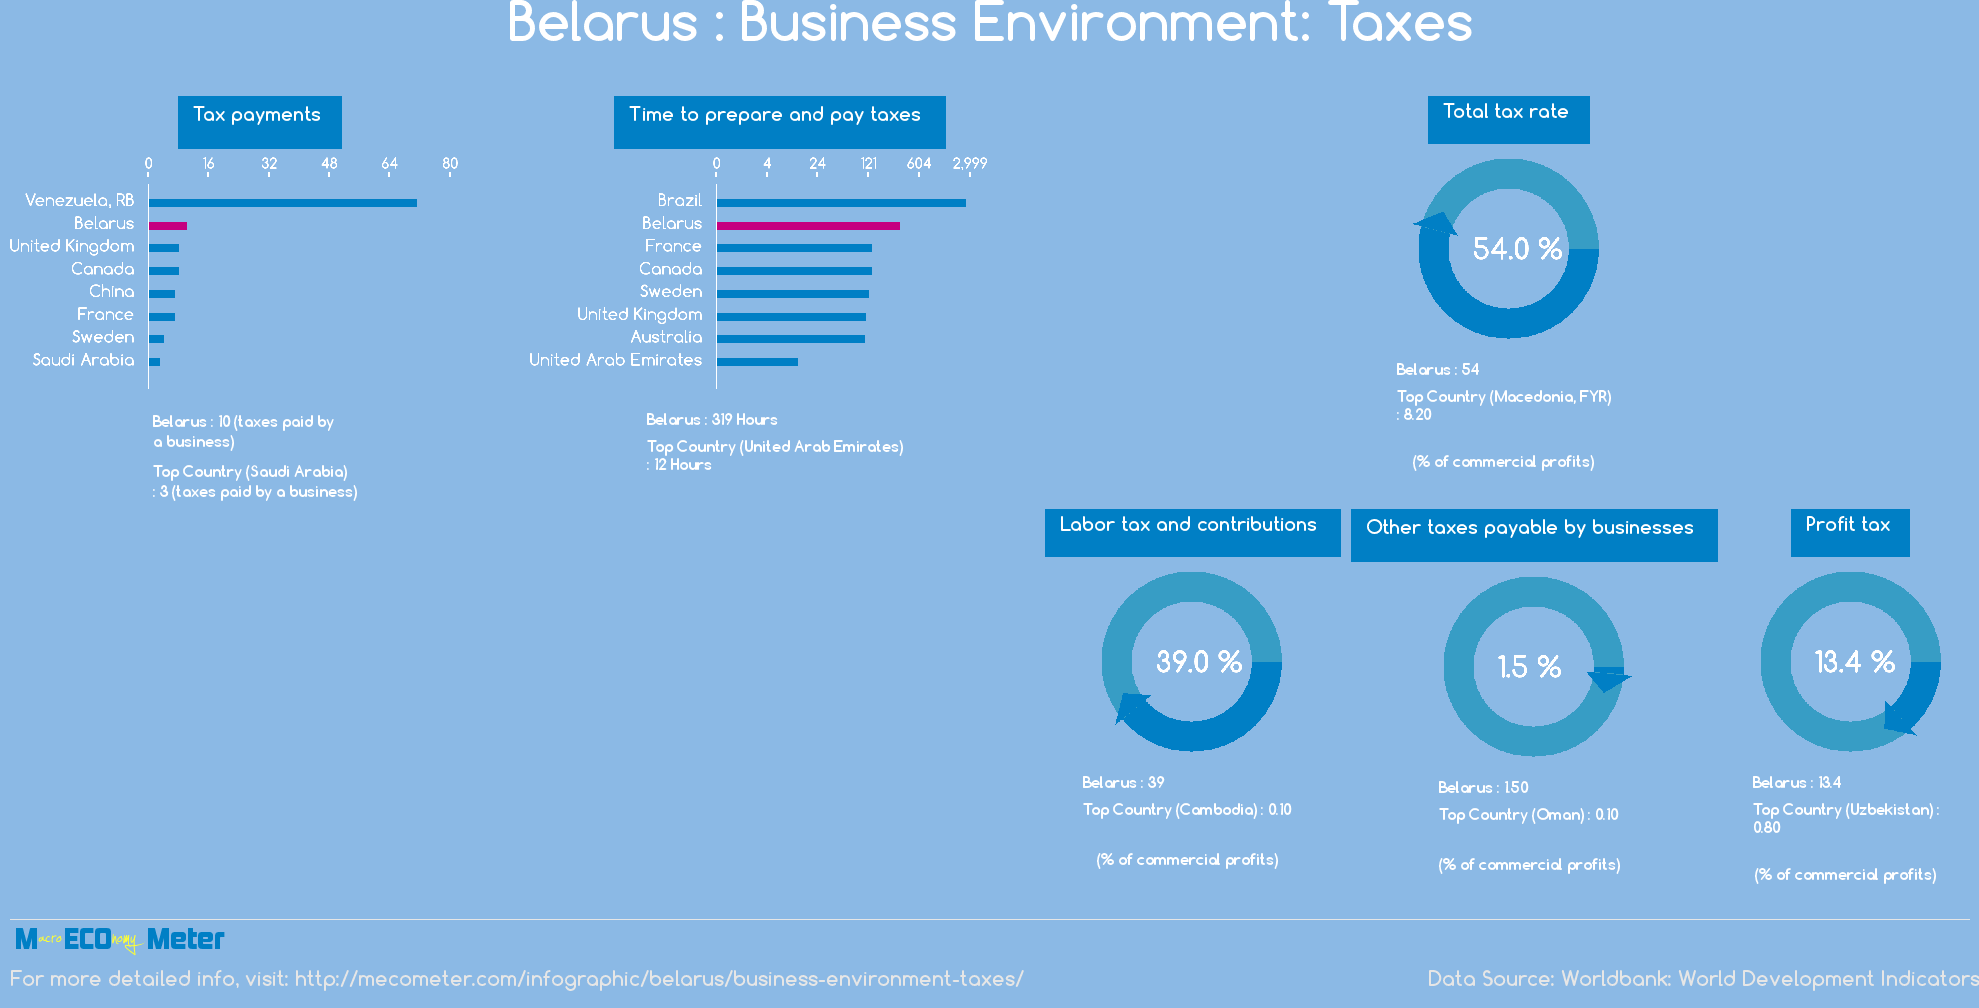 Belarus : Business Environment: Taxes